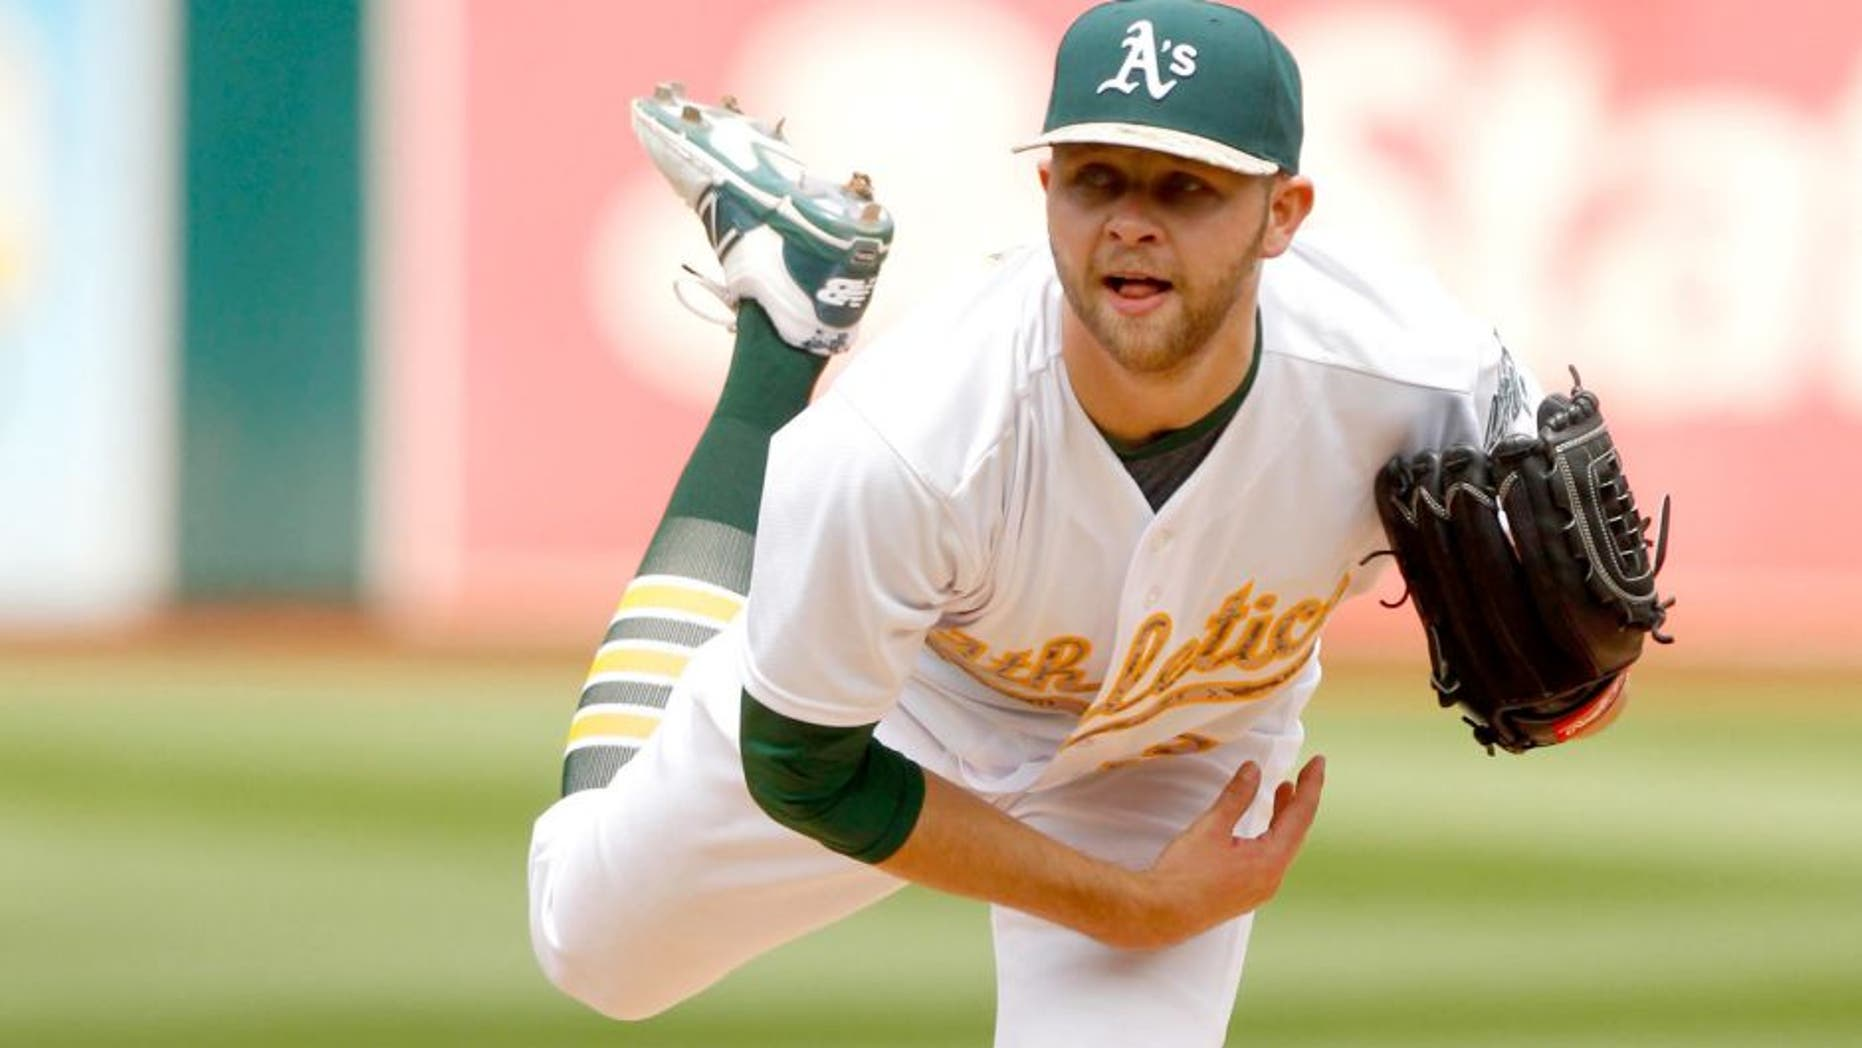 May 25, 2015; Oakland, CA, USA; Oakland Athletics pitcher Jesse Hahn (32) follows through on a pitch against the Detroit Tigers in the third inning at O.co Coliseum. Mandatory Credit: Cary Edmondson-USA TODAY Sports